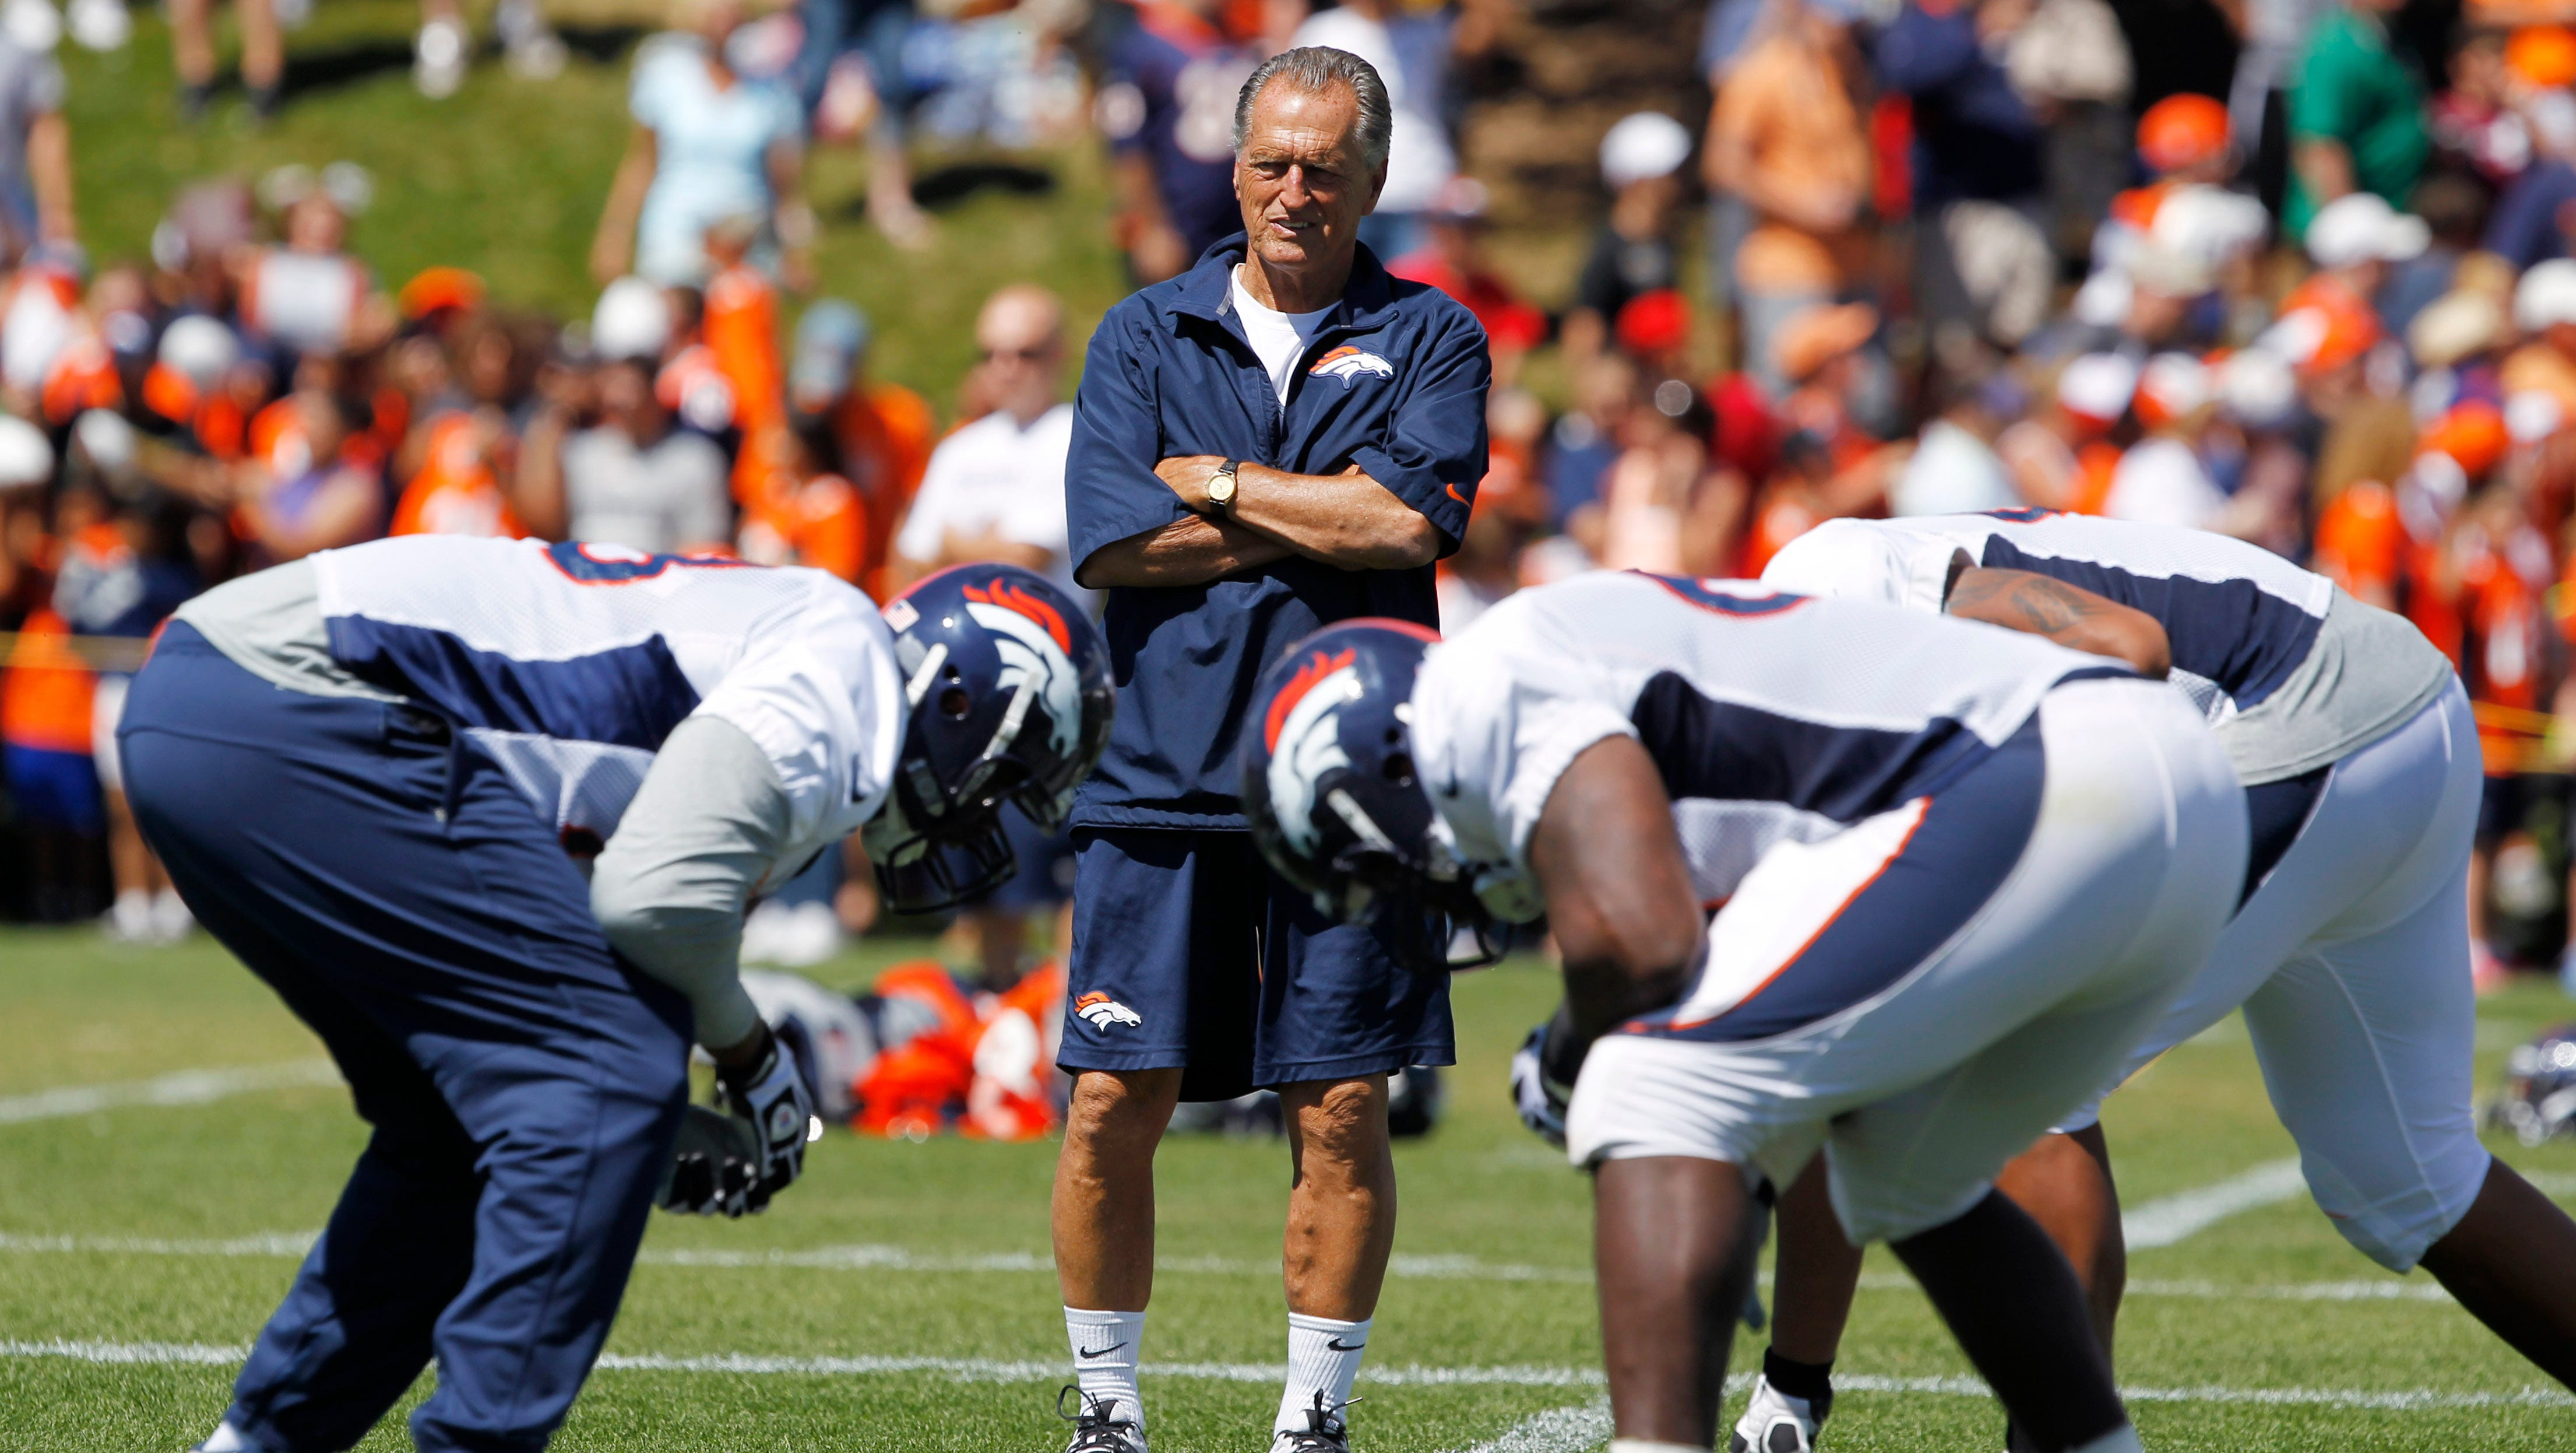 Denver Broncos offensive line consultant Alex Gibbs looks on as linemen take part in drills after the morning session at the team's training camp.